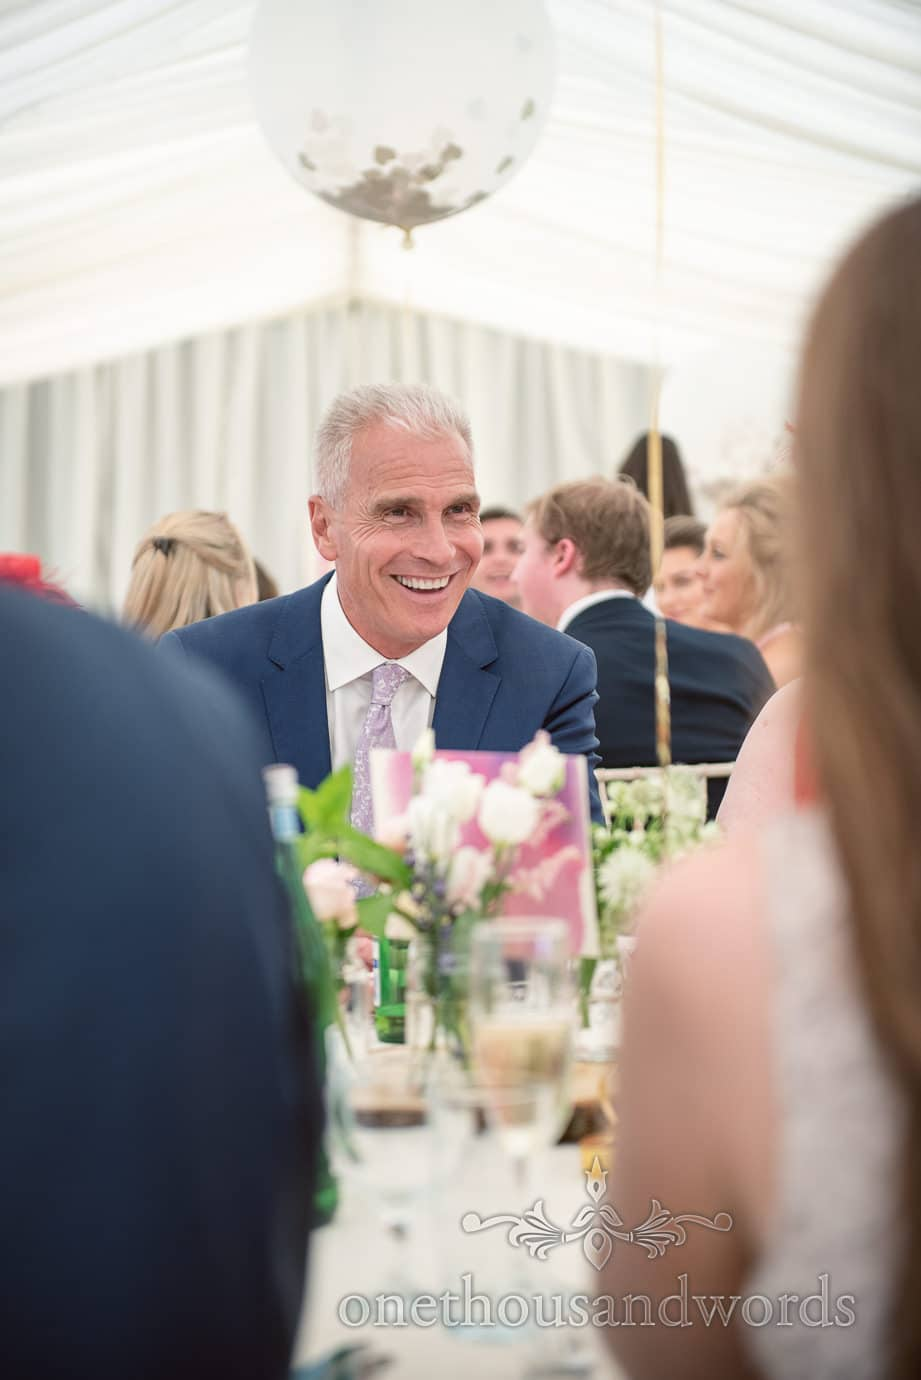 Wedding guest in blue suit laughs at wedding speeches at marquee wedding photograph